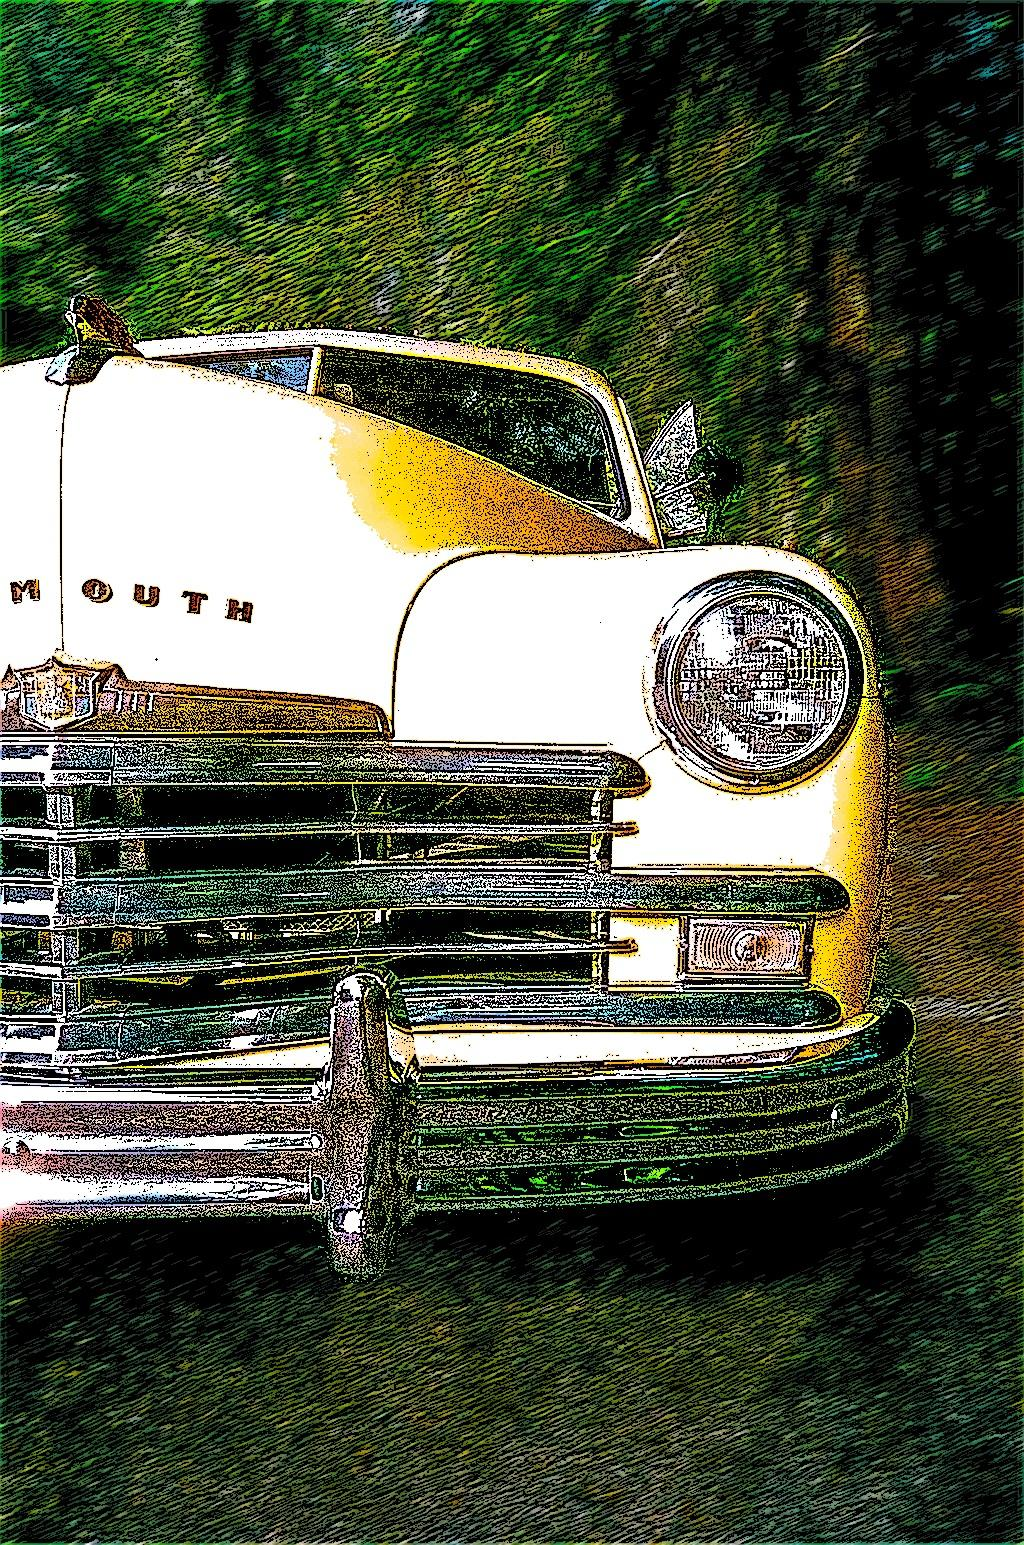 austin1993 1949 Plymouth Deluxe